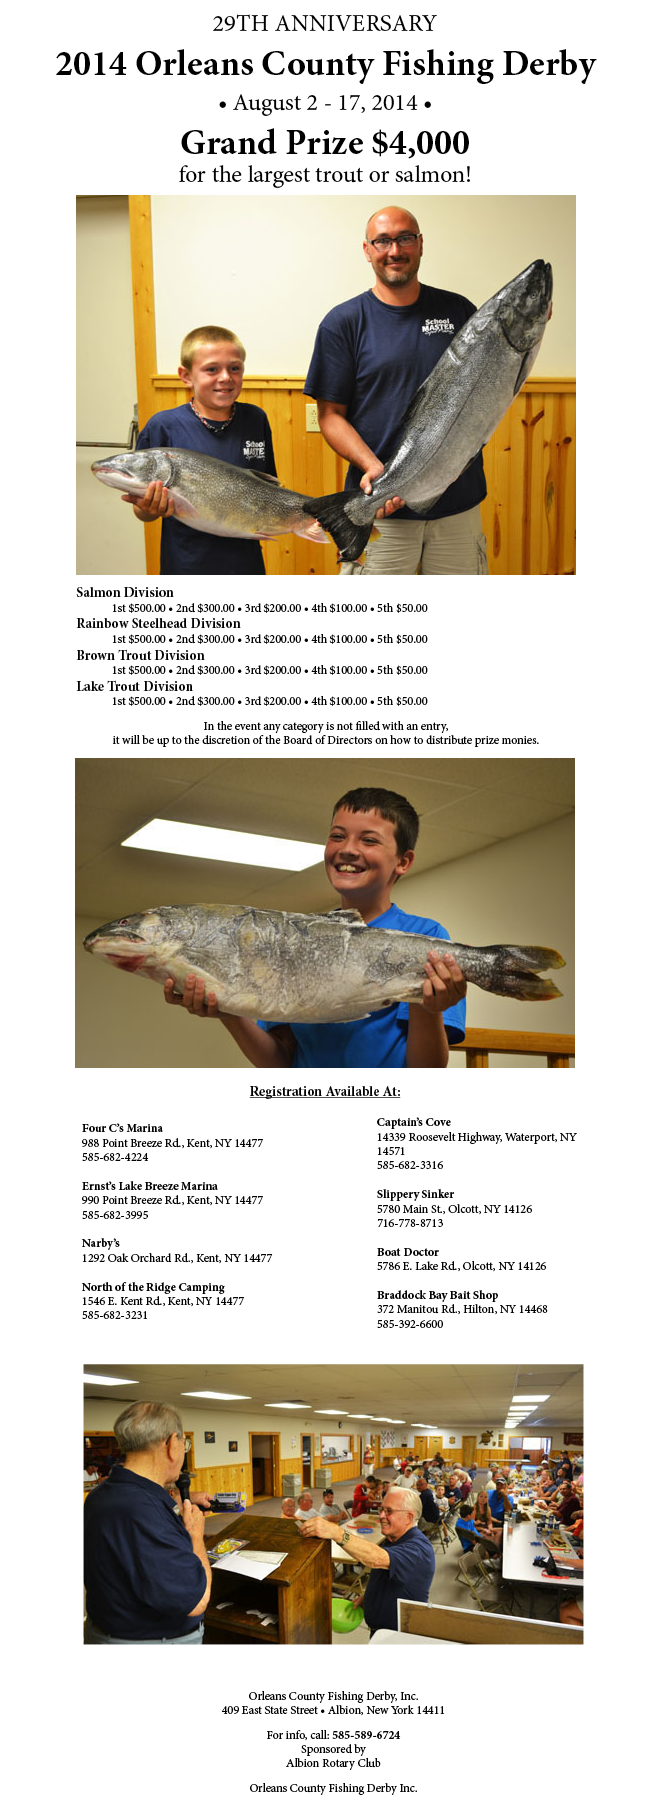 Orleans County Fishing Derby 2014 results